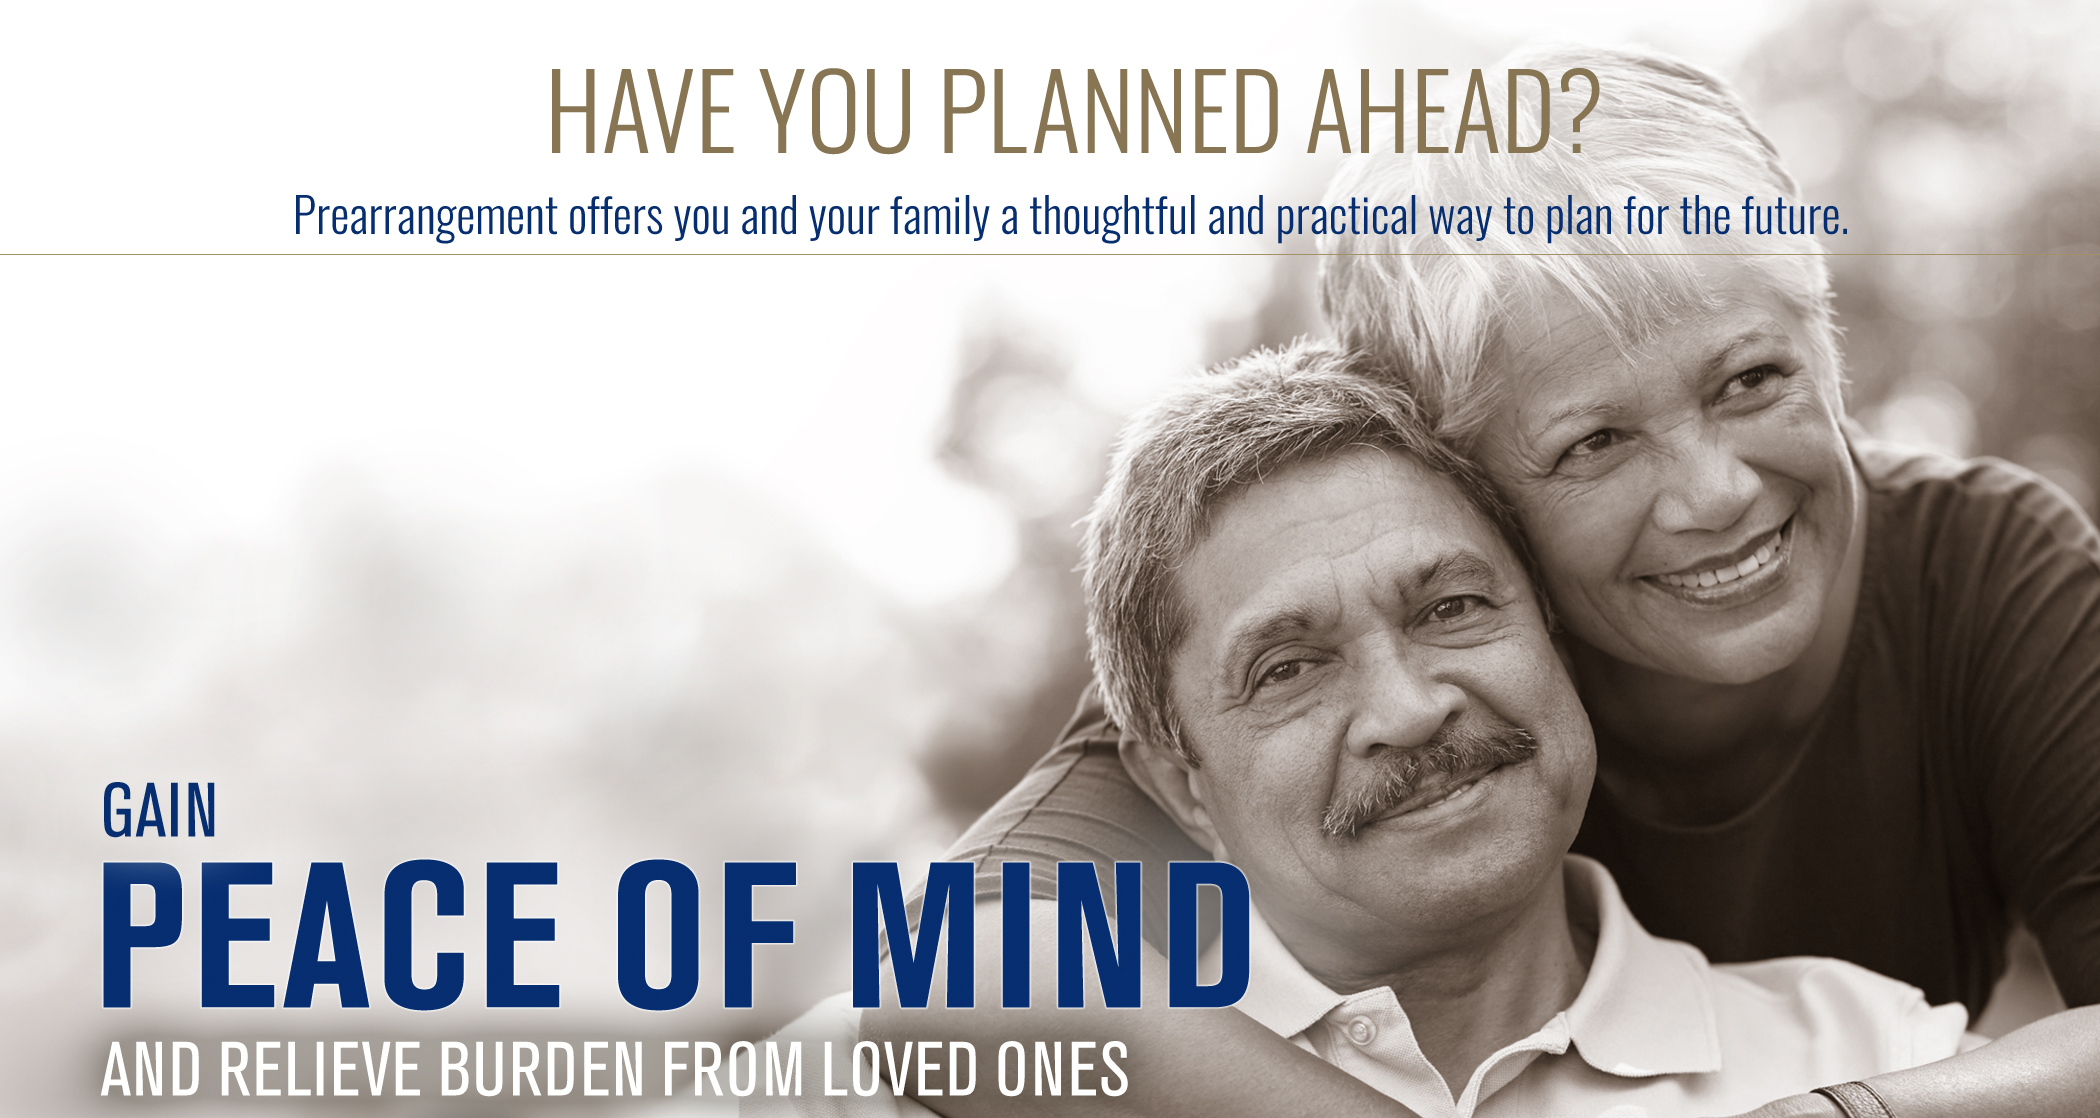 Family1 Gain Peace of Mind and relieve burdens from loved ones